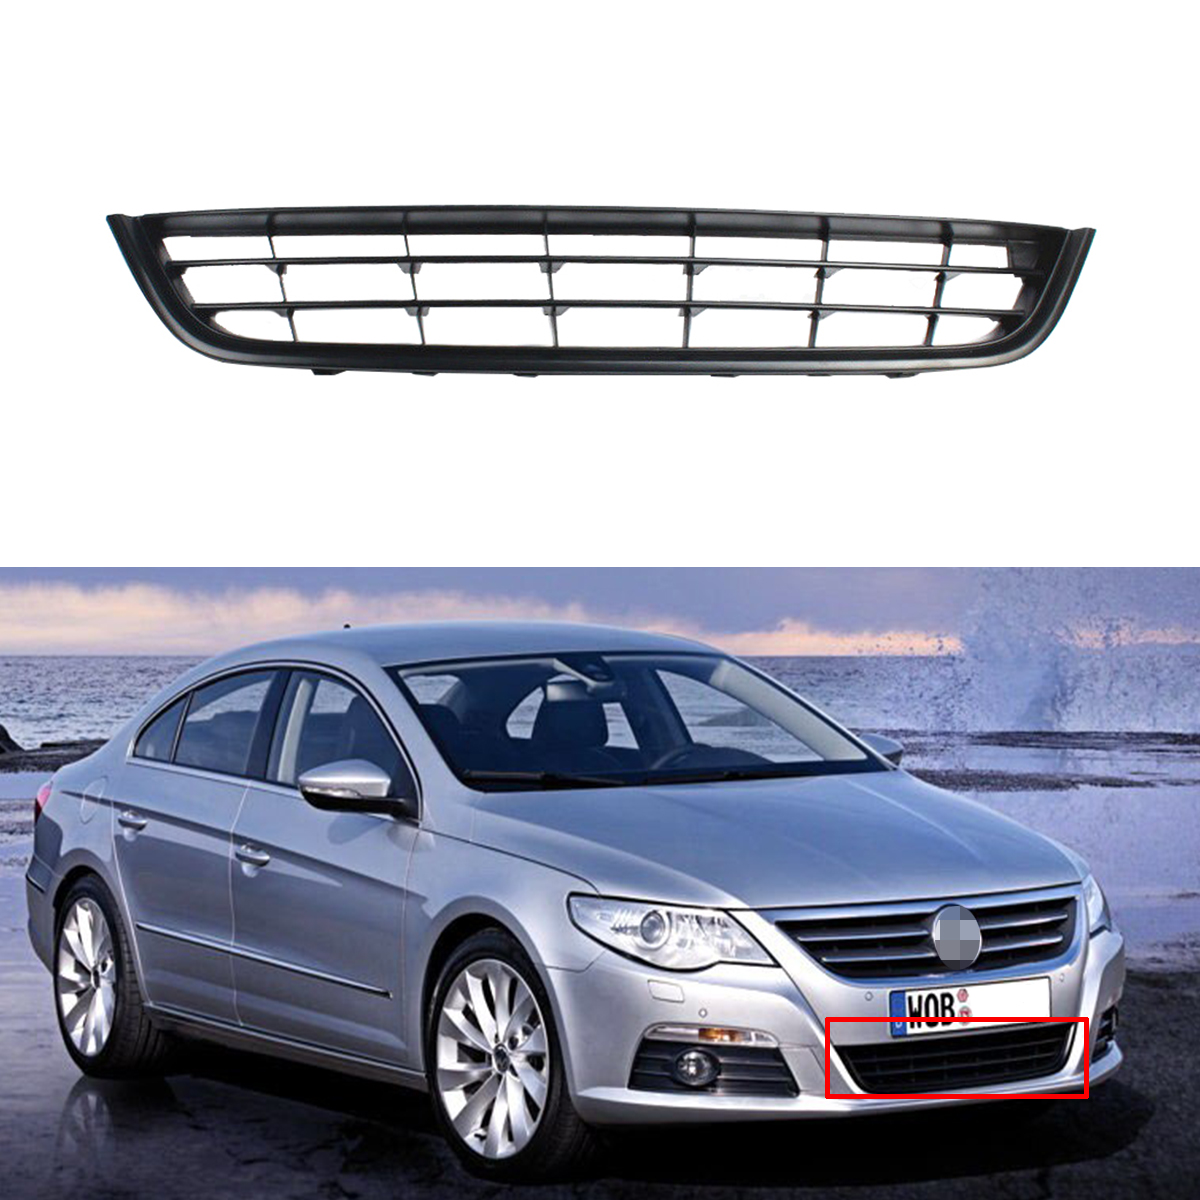 Front Bumper Lower Grille For VW CC 2009-2012 3C8853677Front Bumper Lower Grille For VW CC 2009-2012 3C8853677